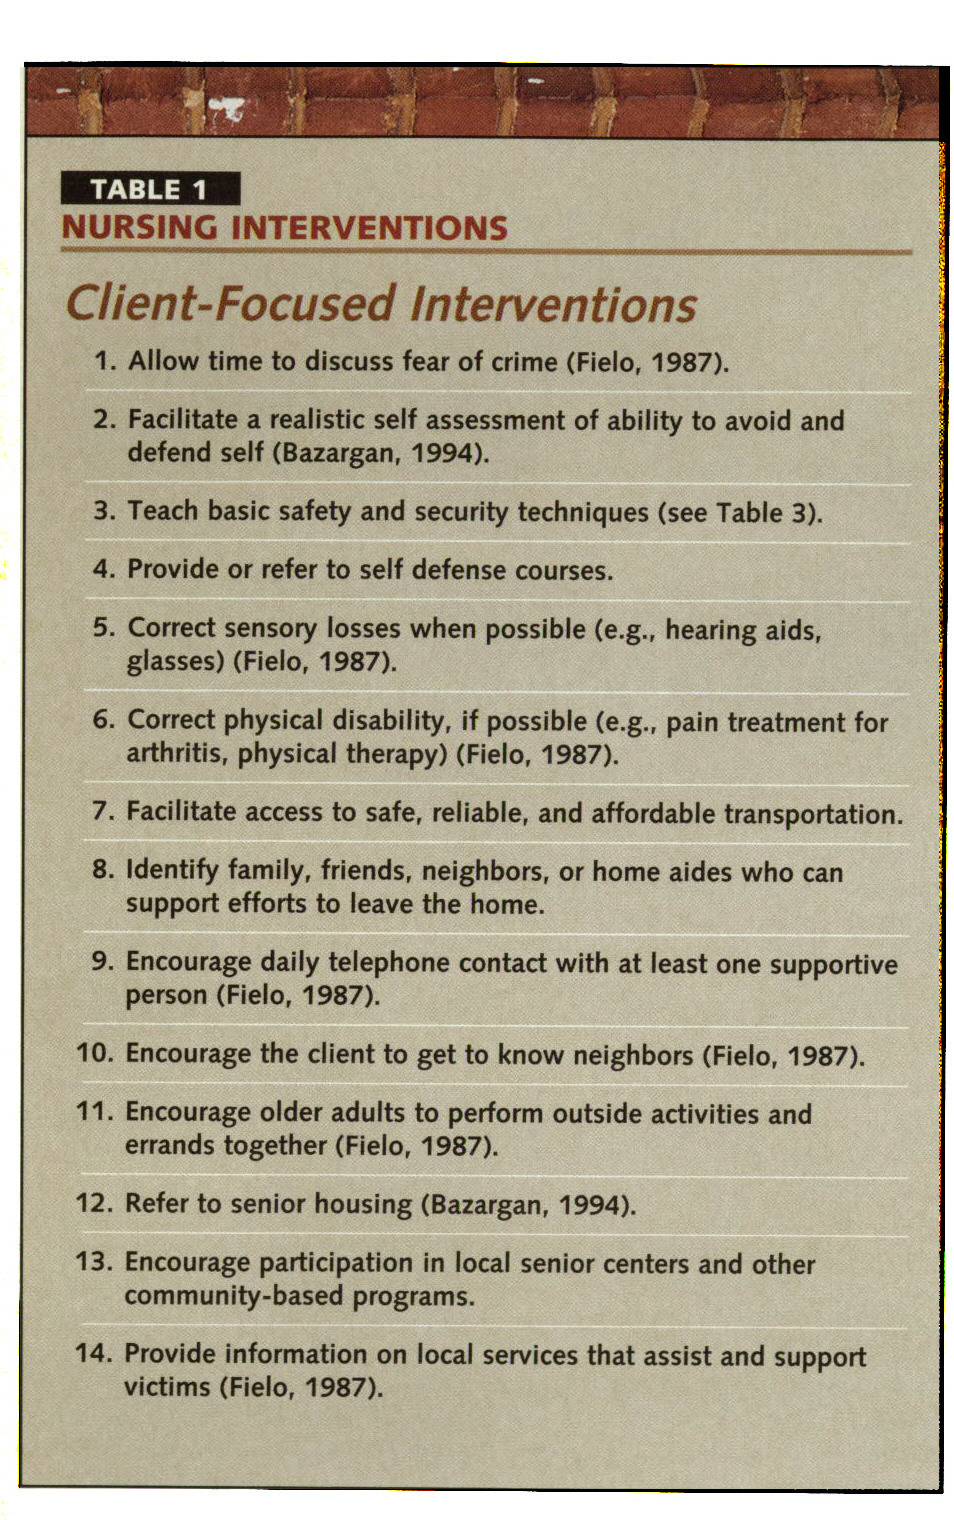 TABLE INURSING INTERVENTIONS